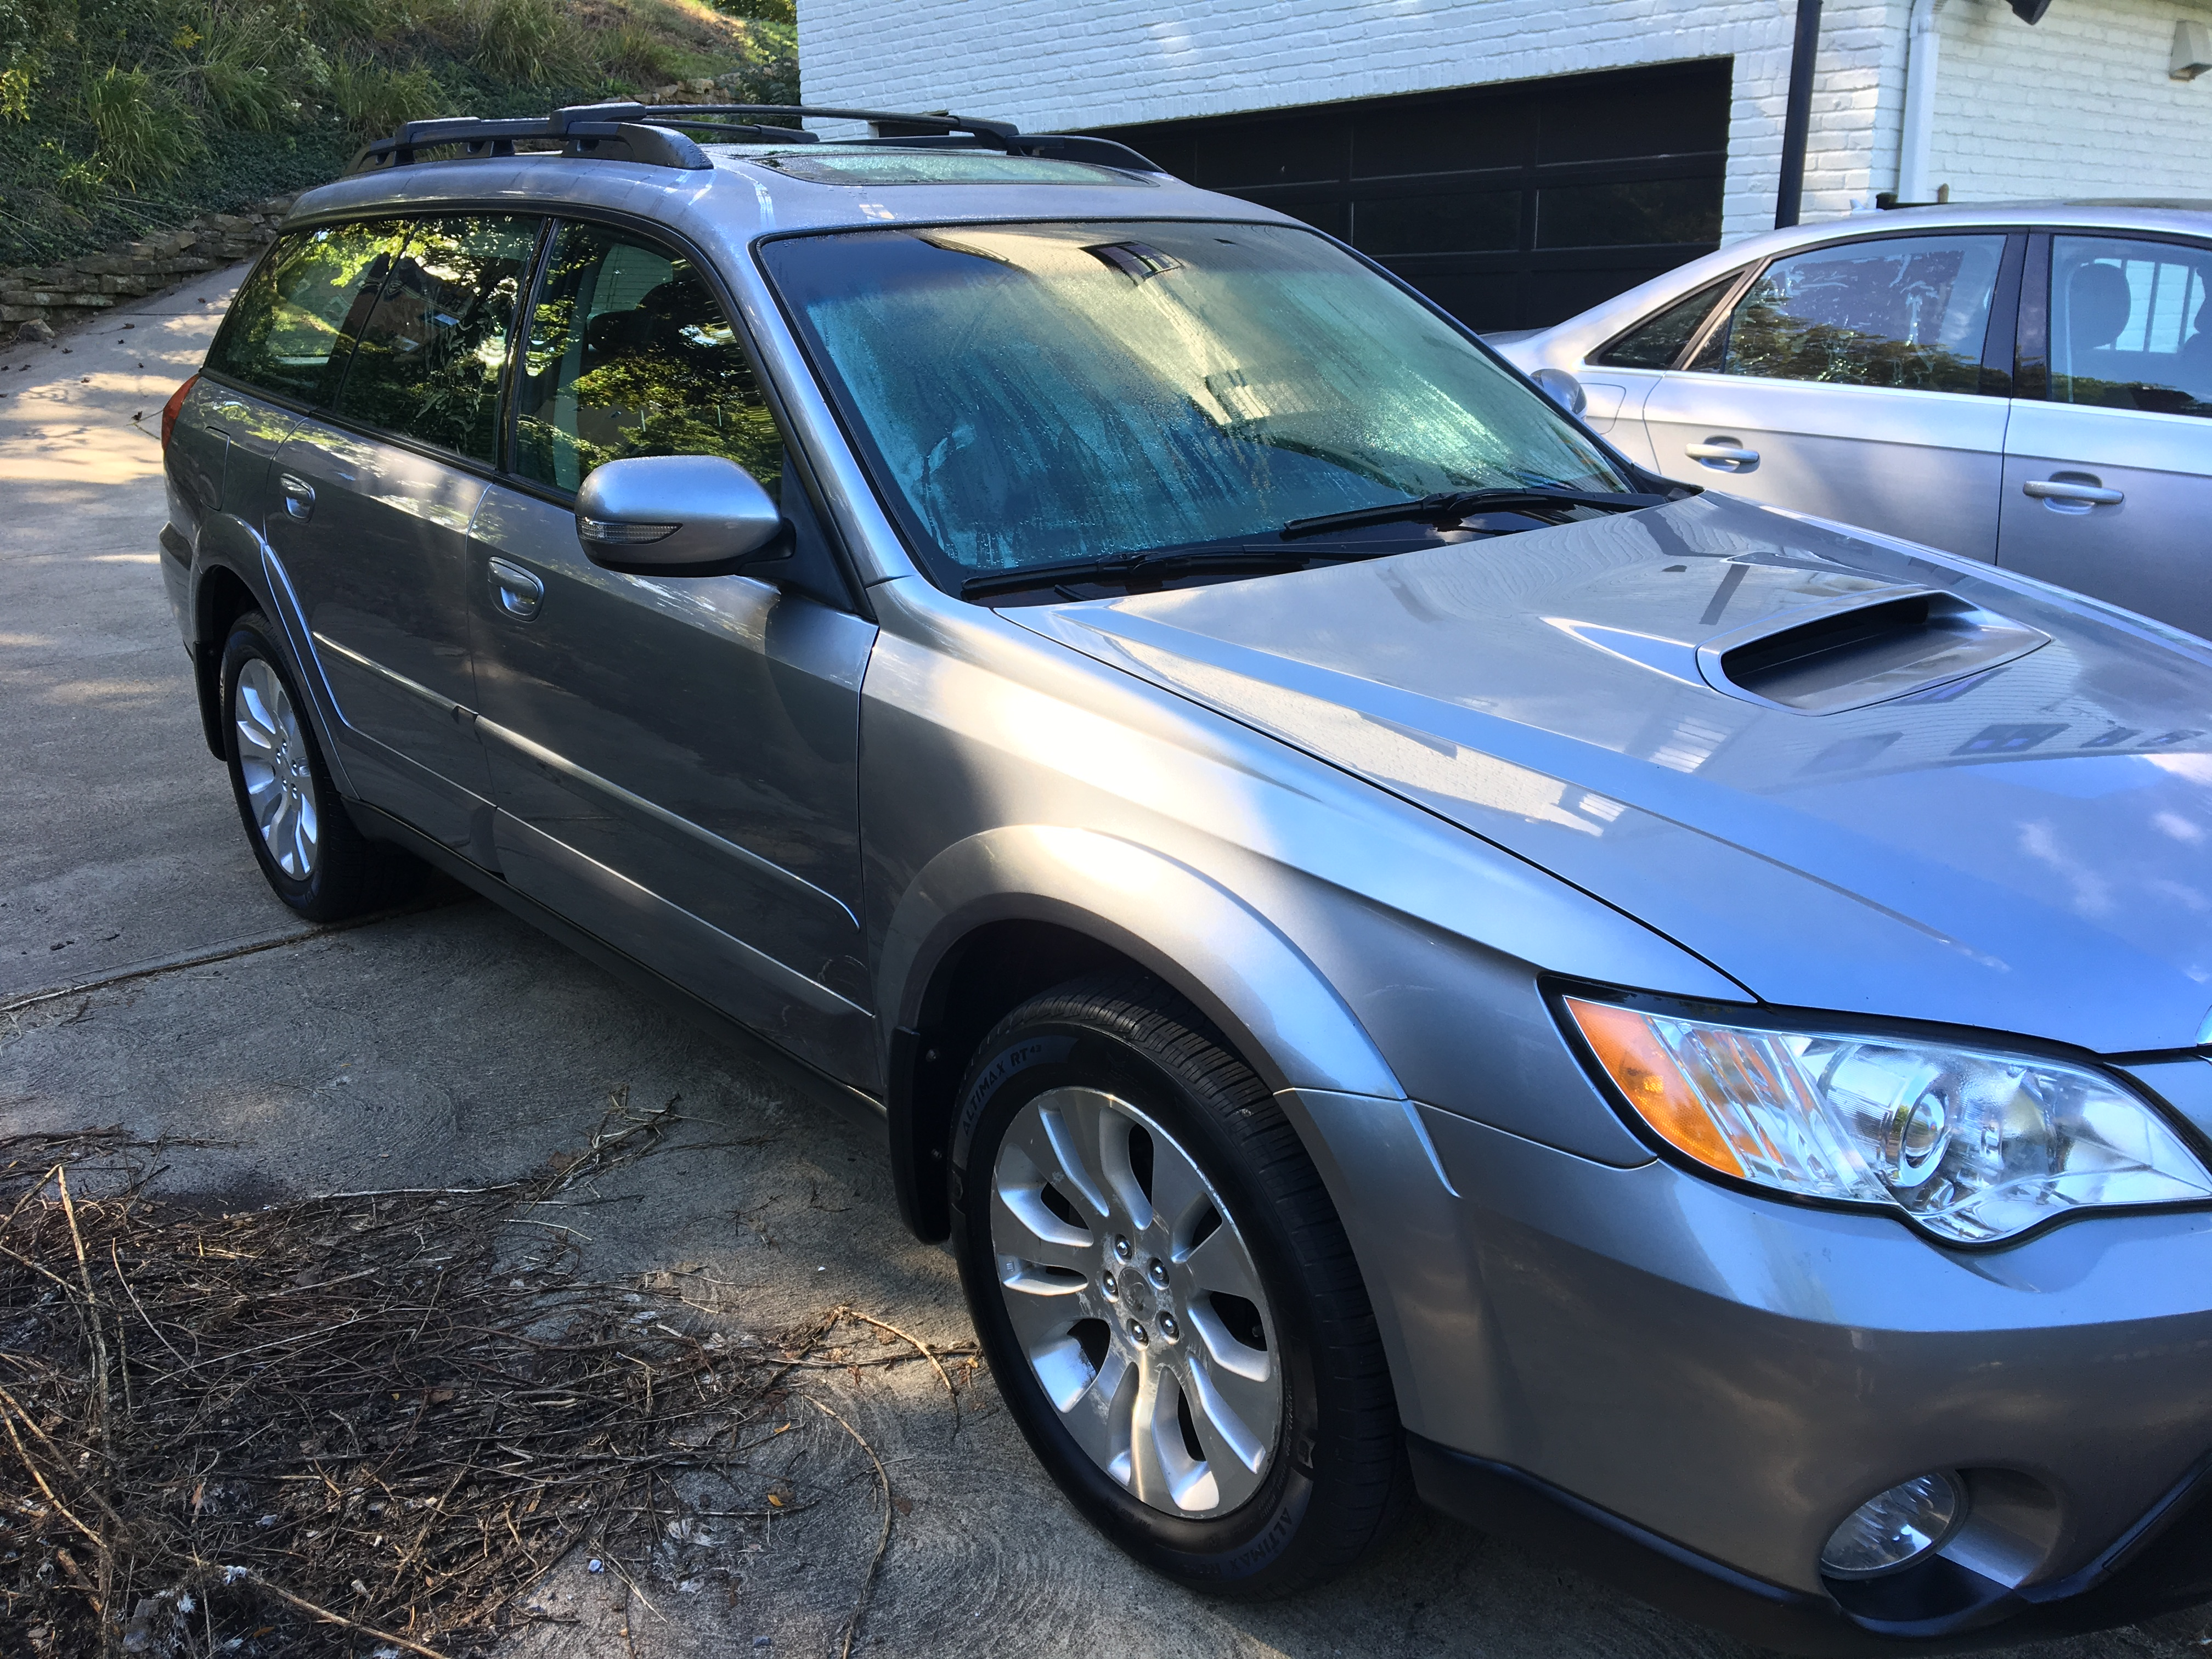 sold 2008 2 5 xt limited clean 85k miles pittsburgh subaru outback subaru outback forums. Black Bedroom Furniture Sets. Home Design Ideas